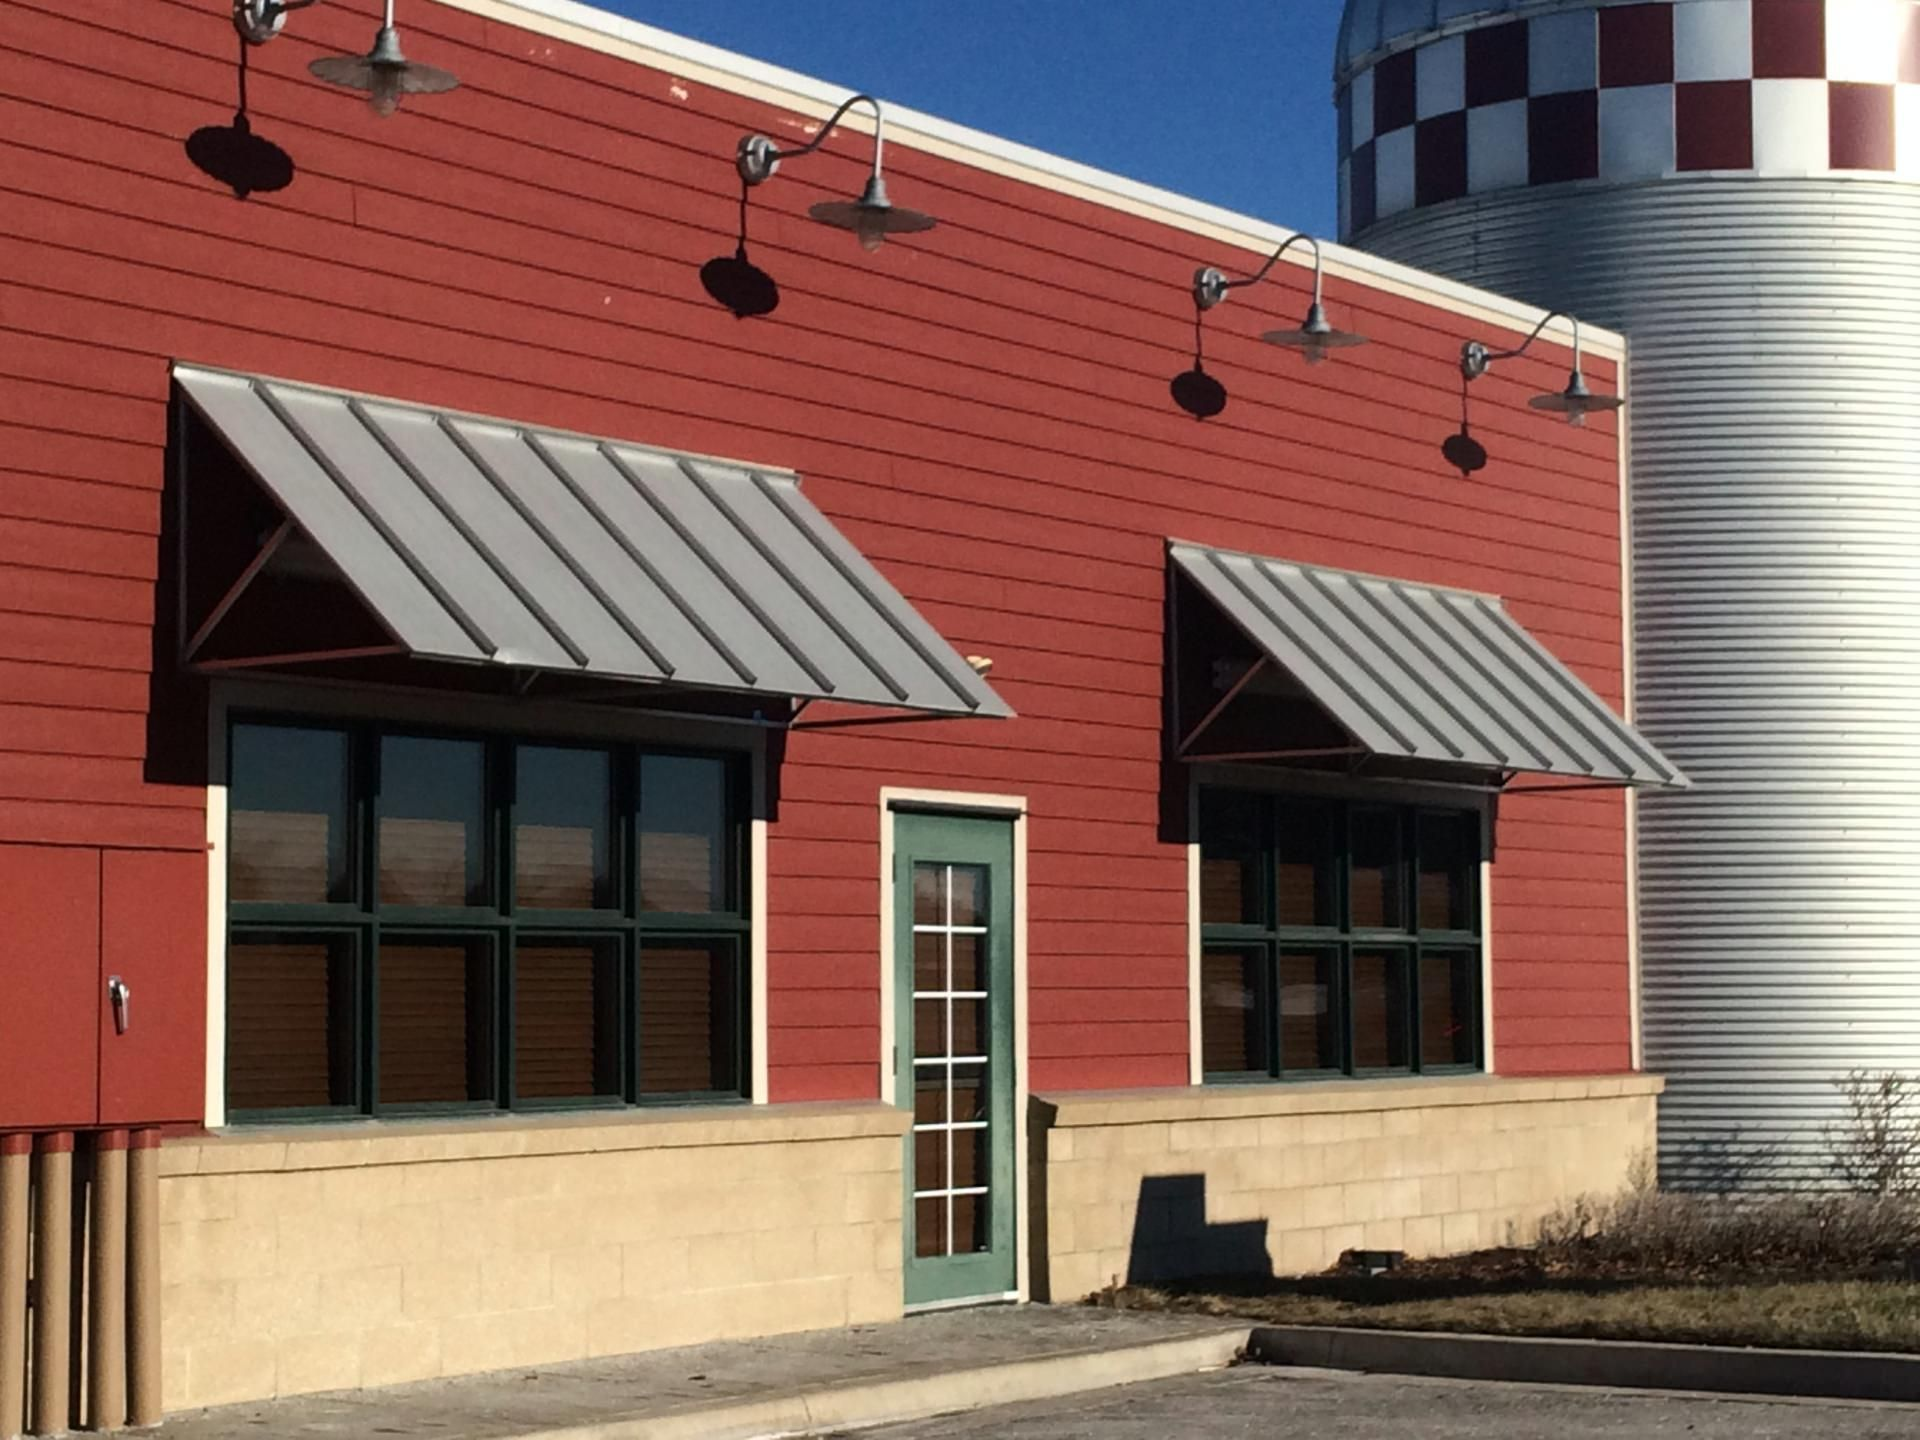 seattle commercial awning photos industrial canvas metal awnings canopy building incredible